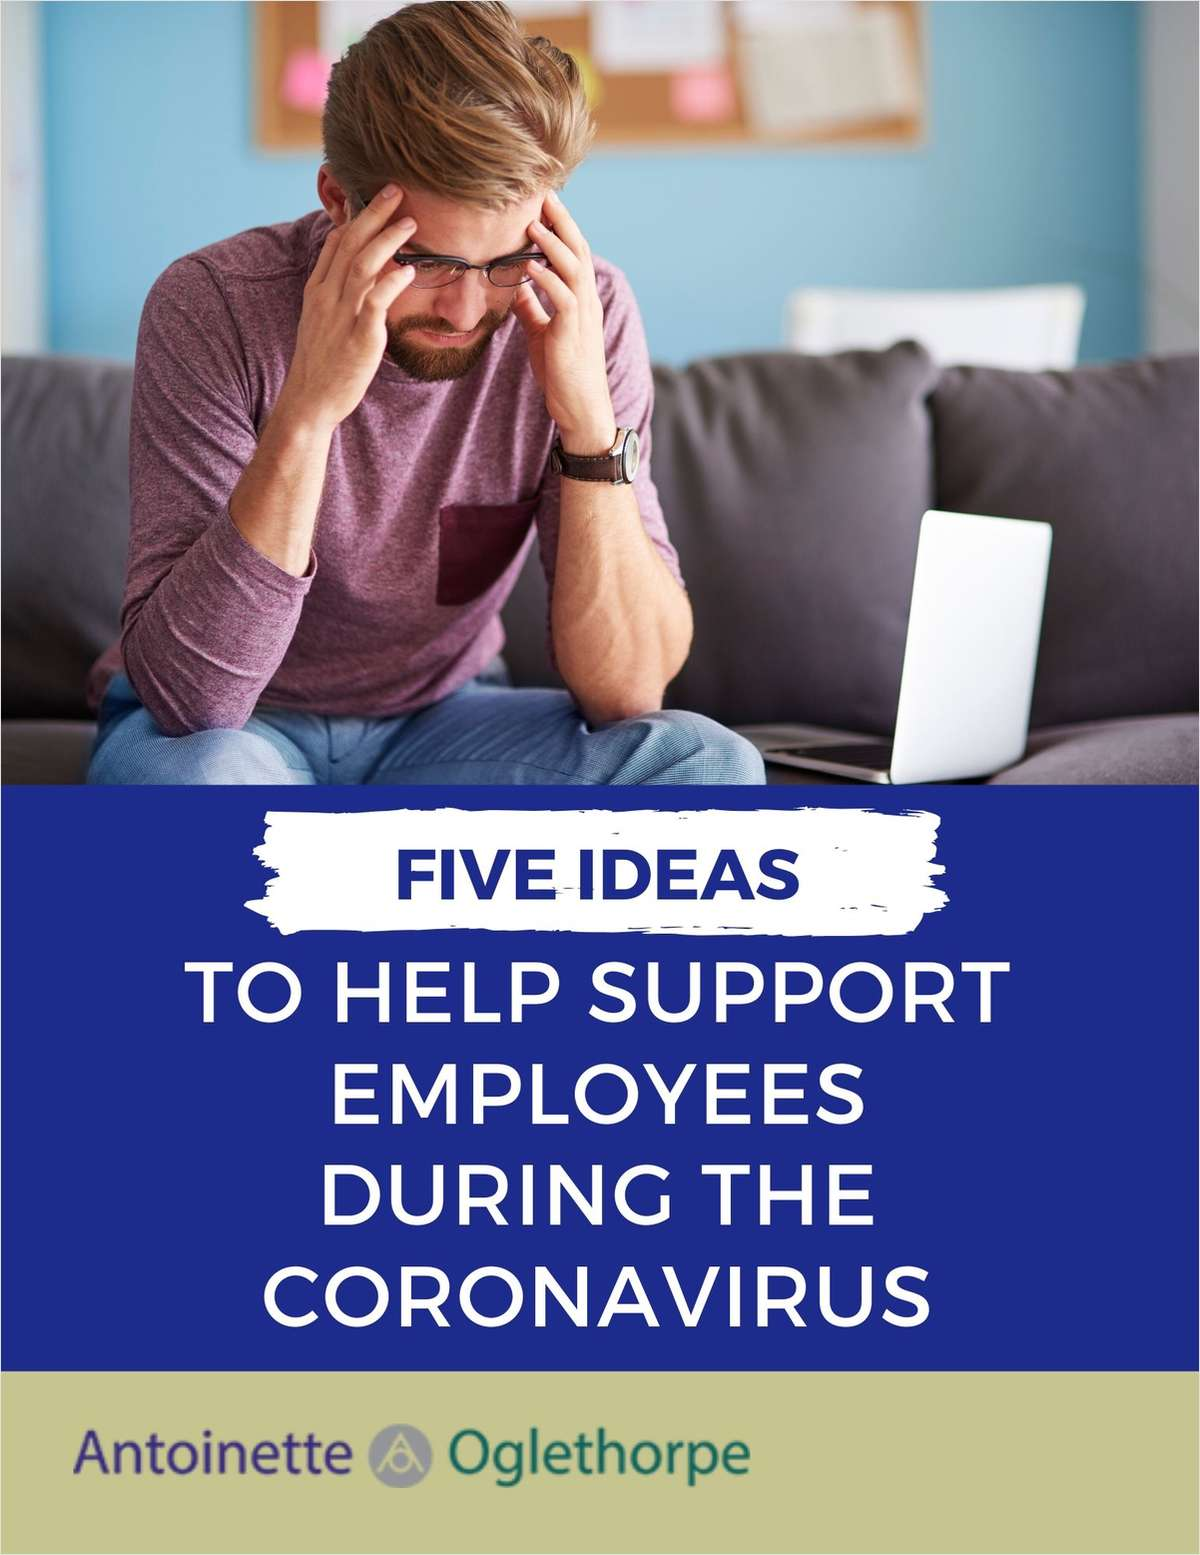 Five Ideas to Help Support Employees During the Coronavirus